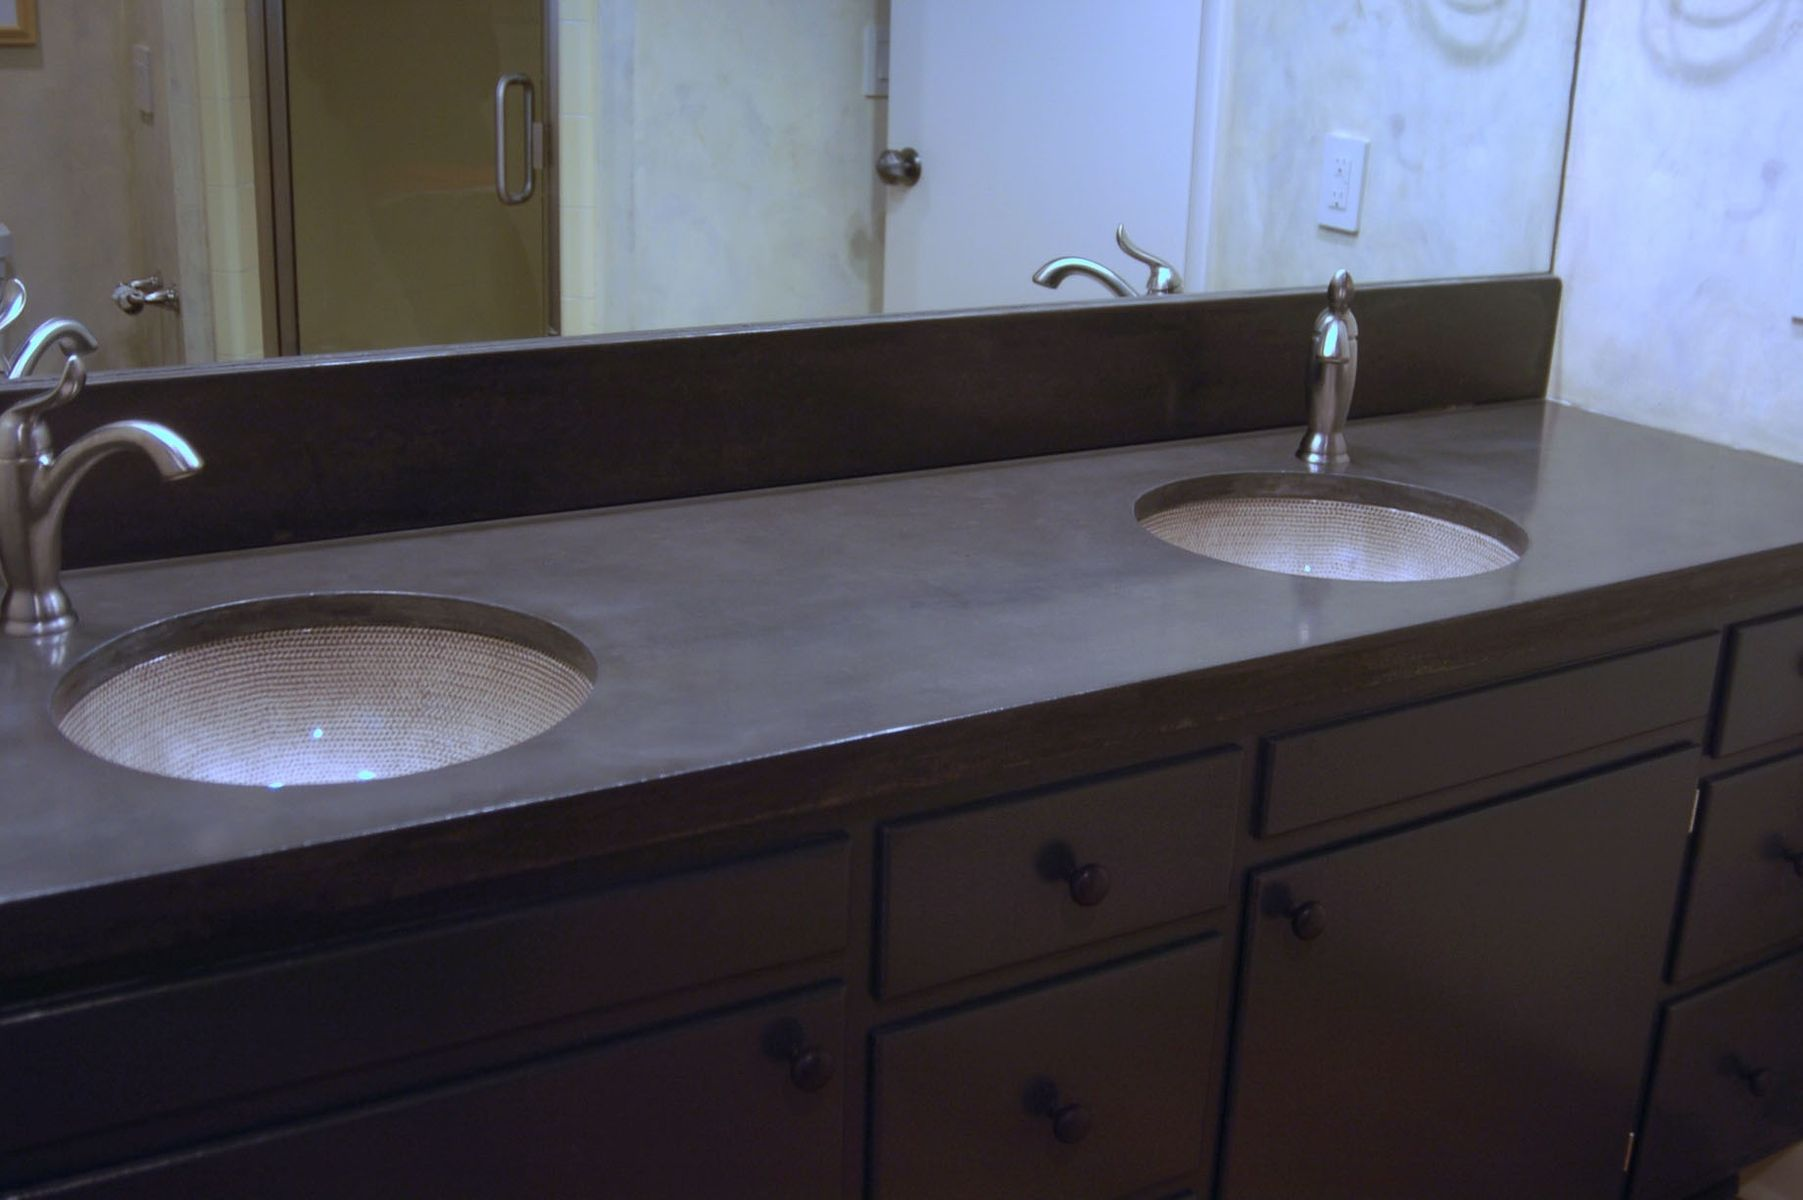 Matching Backsplash To Countertop Hand Crafted Concrete Vanity Countertop With Matching